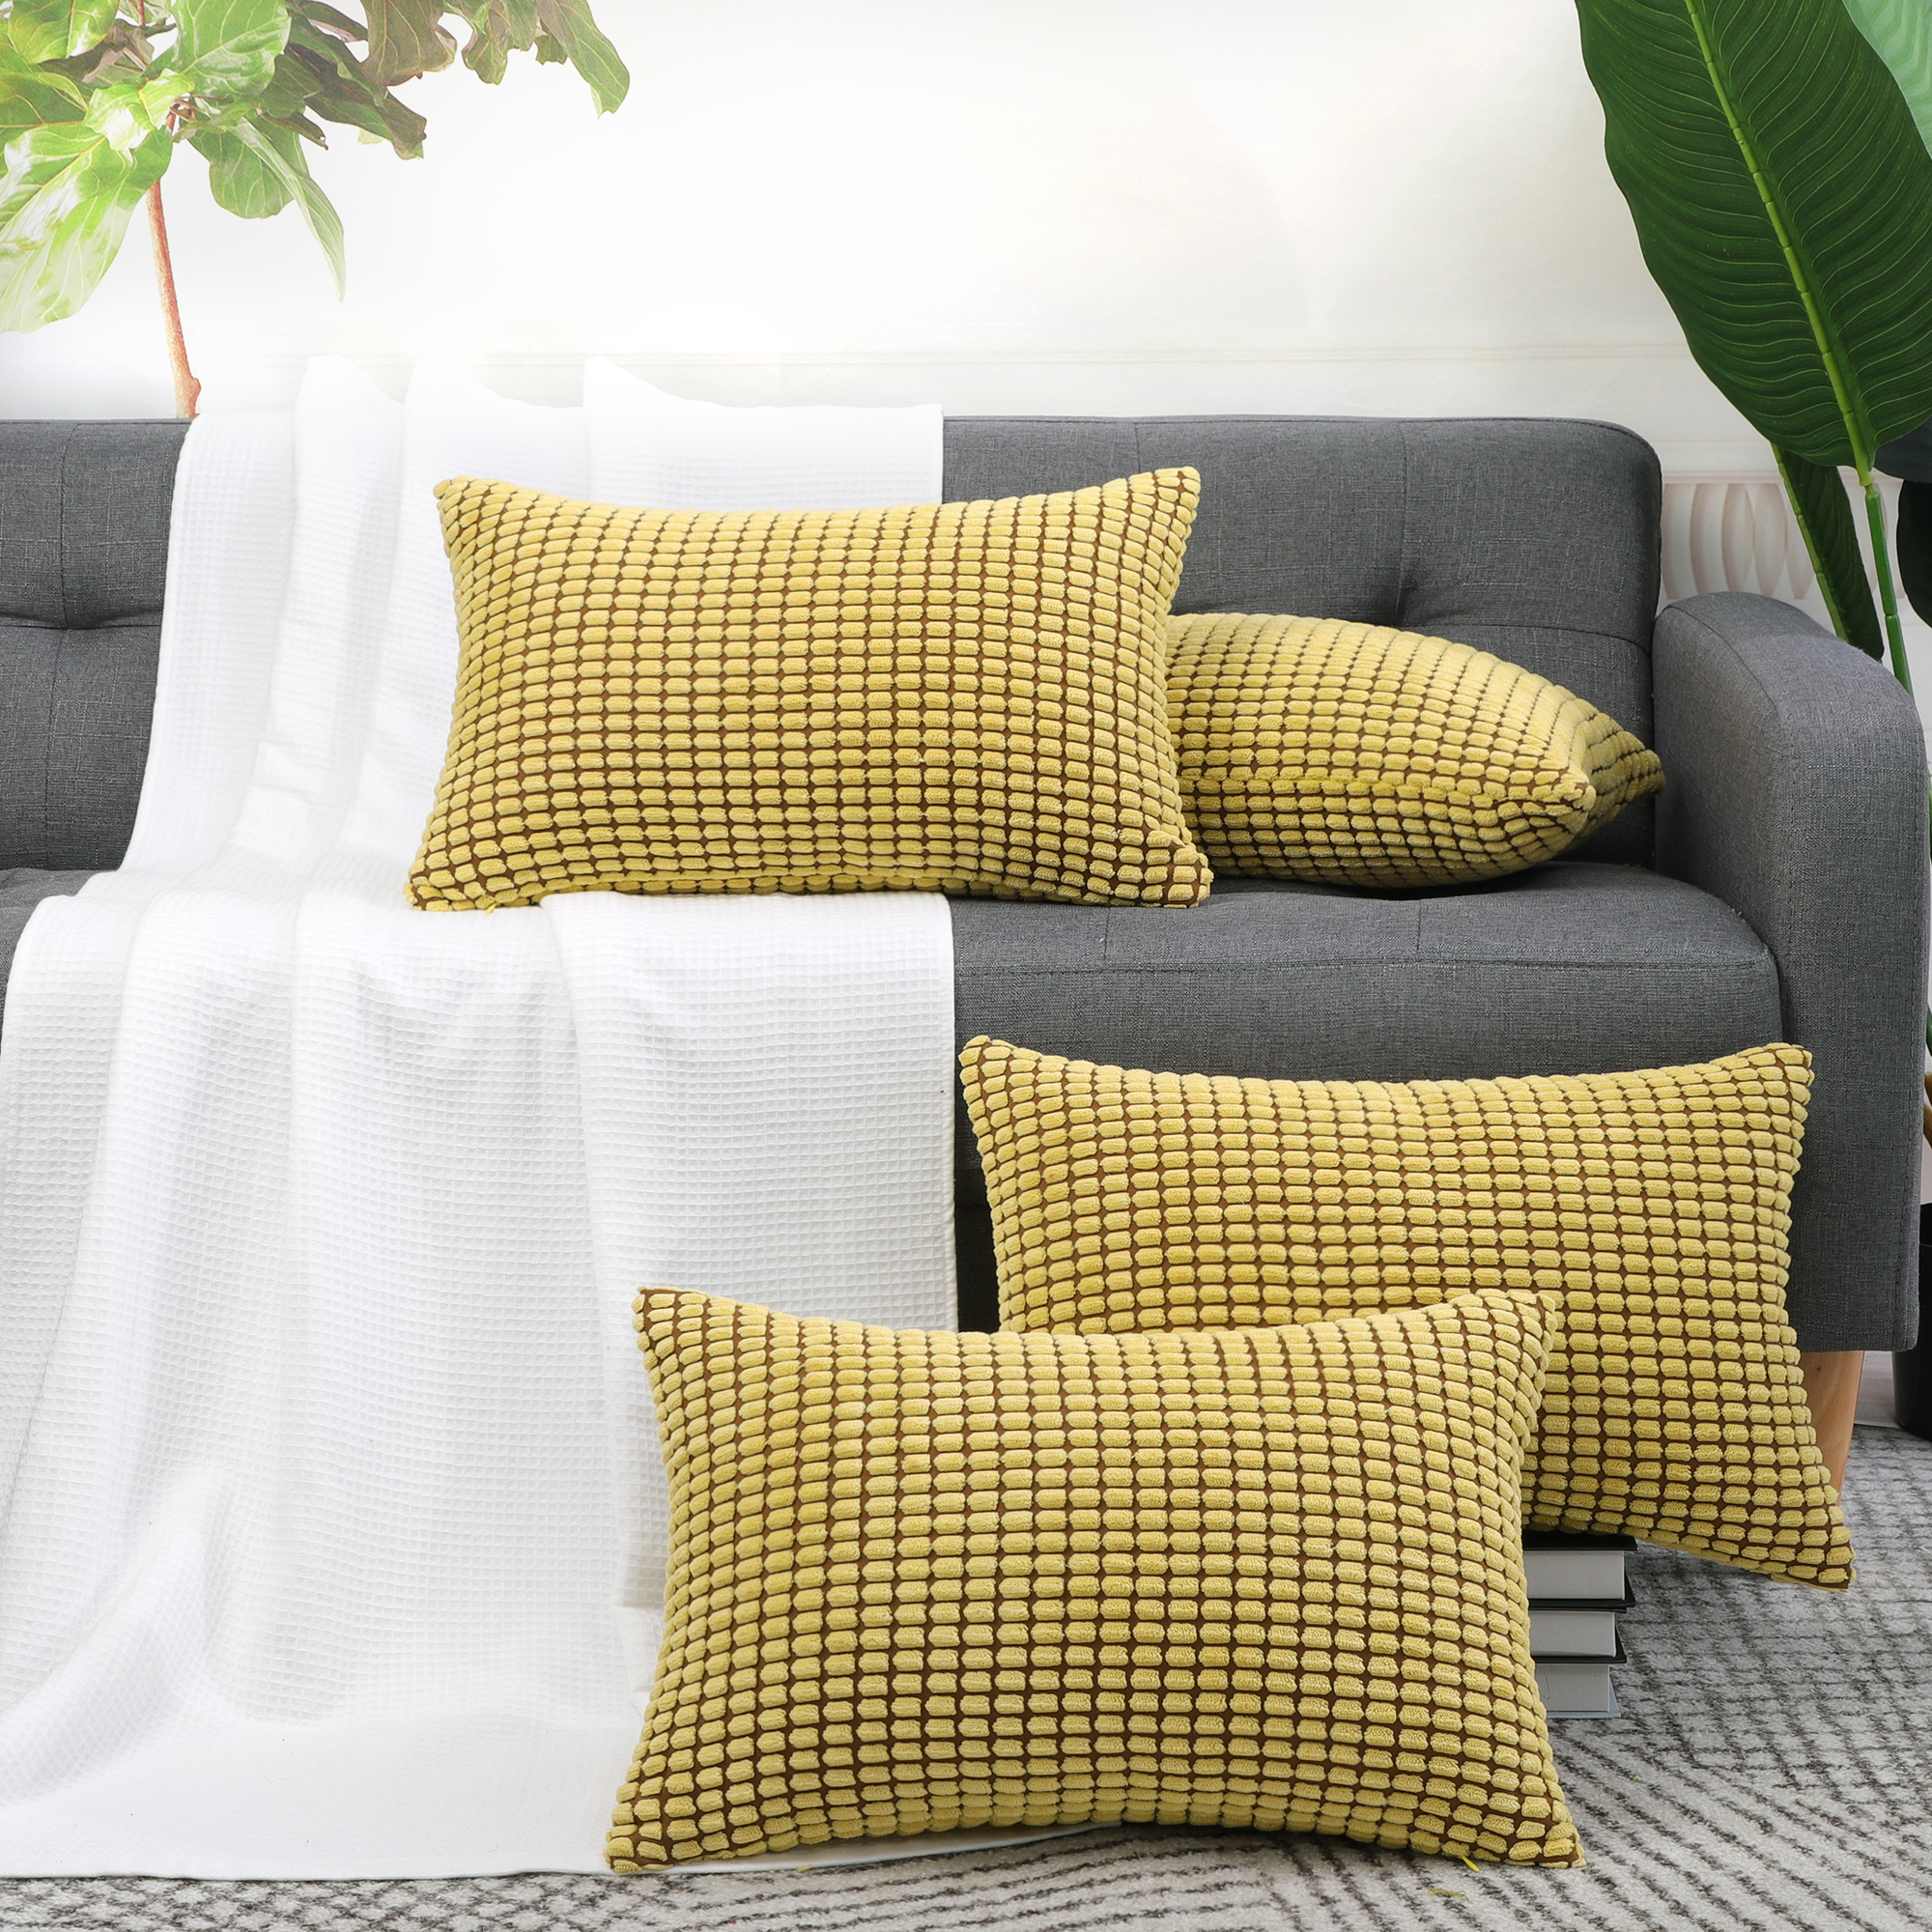 Rectangle-Pillow-Cases-Throw-Pillow-Cover-Christmas-Gift-Cushion-Cover-12-034-x-18-034 thumbnail 23